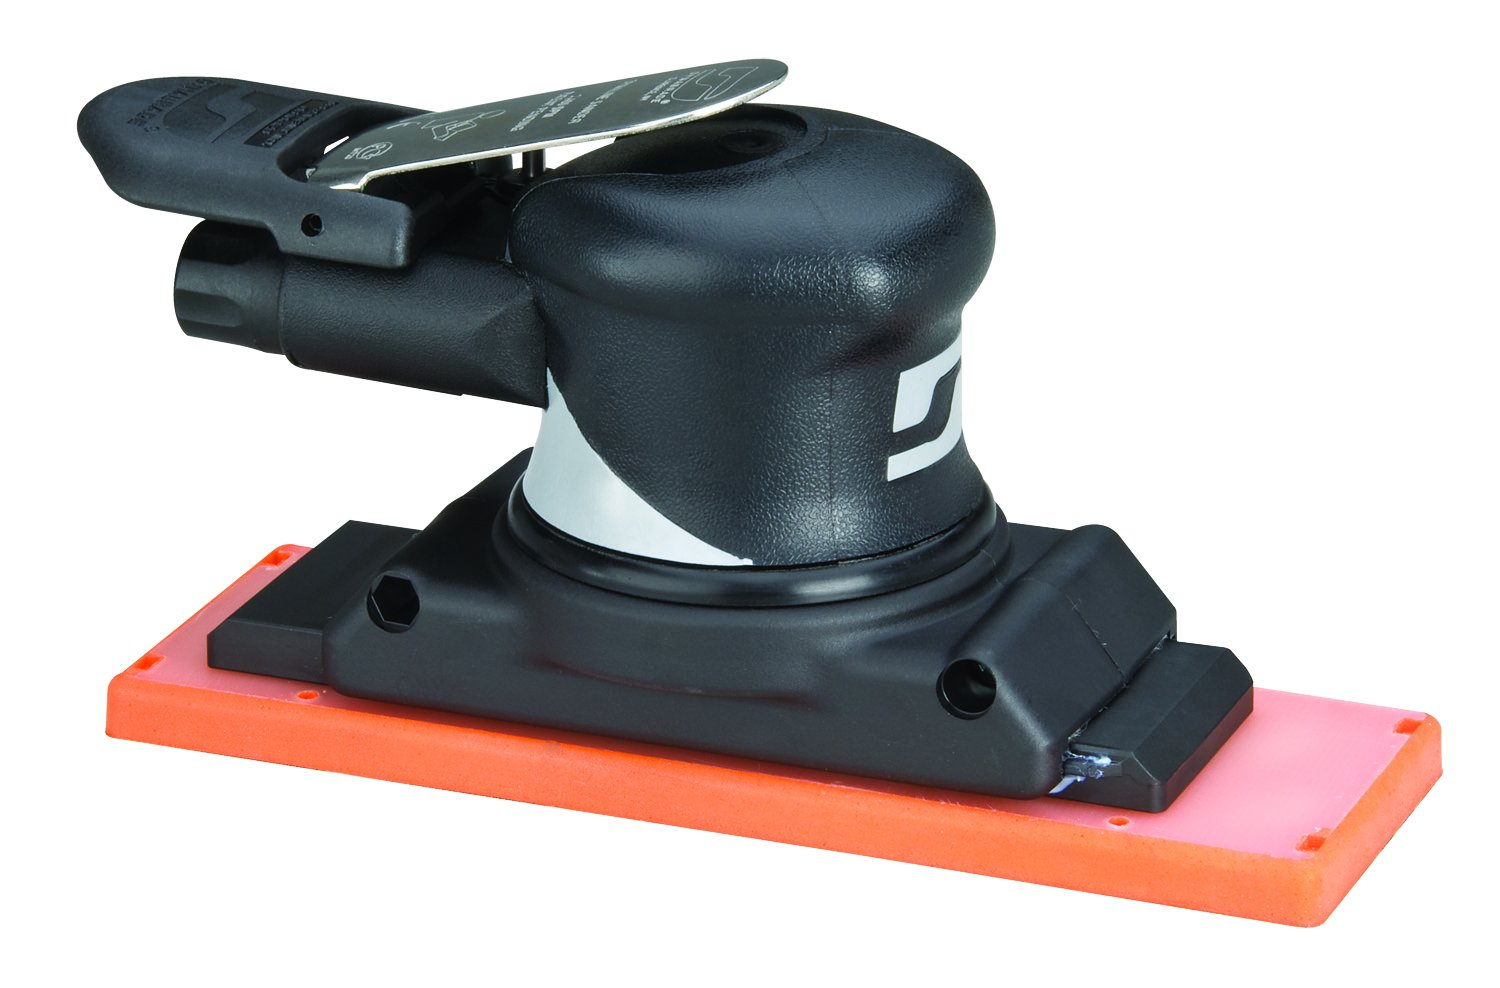 Dynabrade 57400 2-3/4-Inch Wide by 8-Inch Length Pad Non-Vacuum Dynaline Sander, Black by Dynabrade B00065TP46